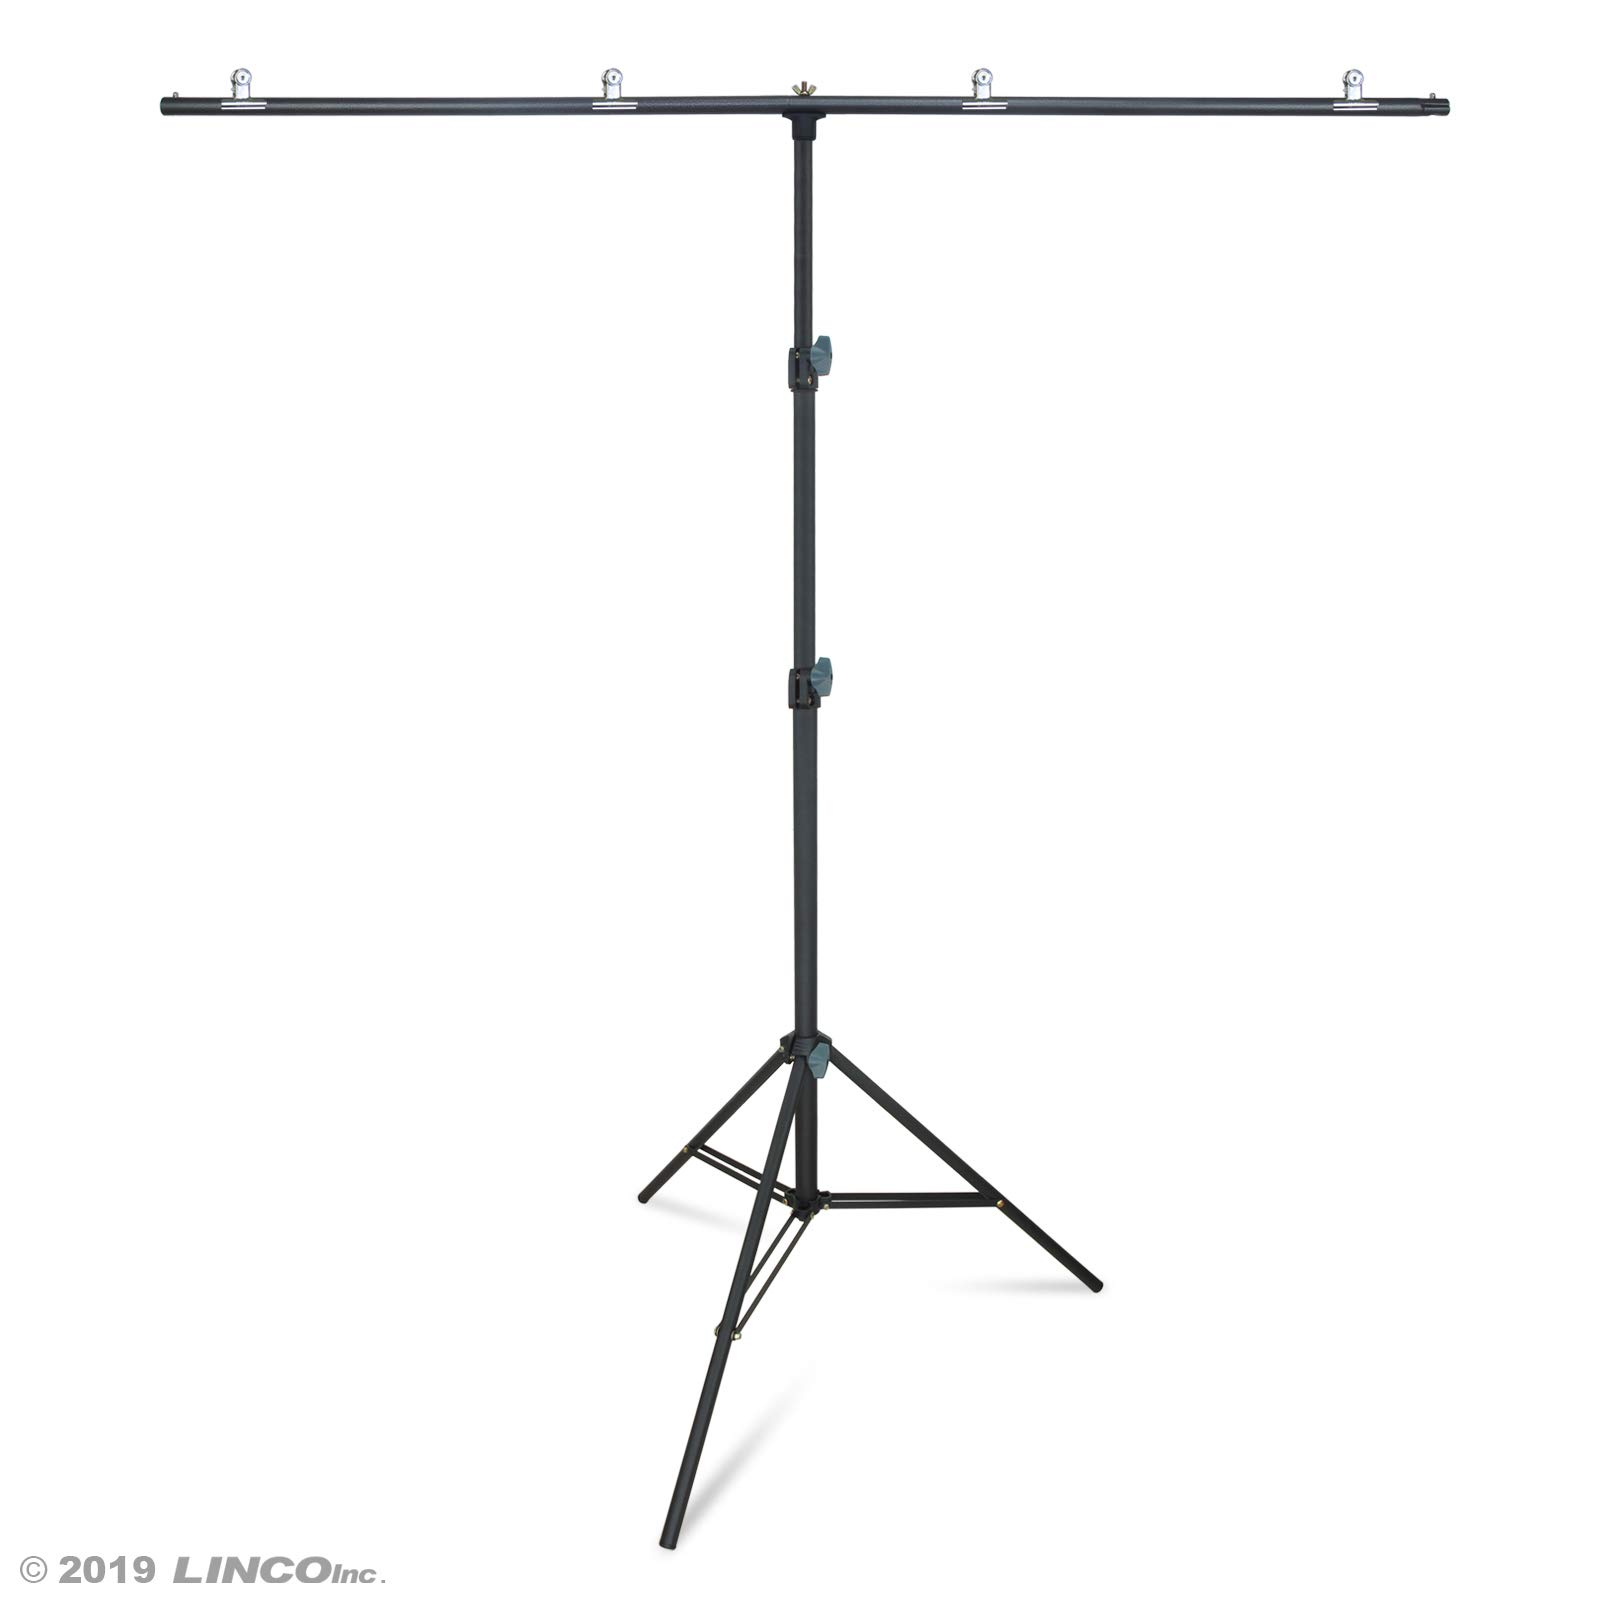 Emart T Shape Portable Background Backdrop Support Stand Kit 5ft Wide 8 5ft Tall Adjustable Photo